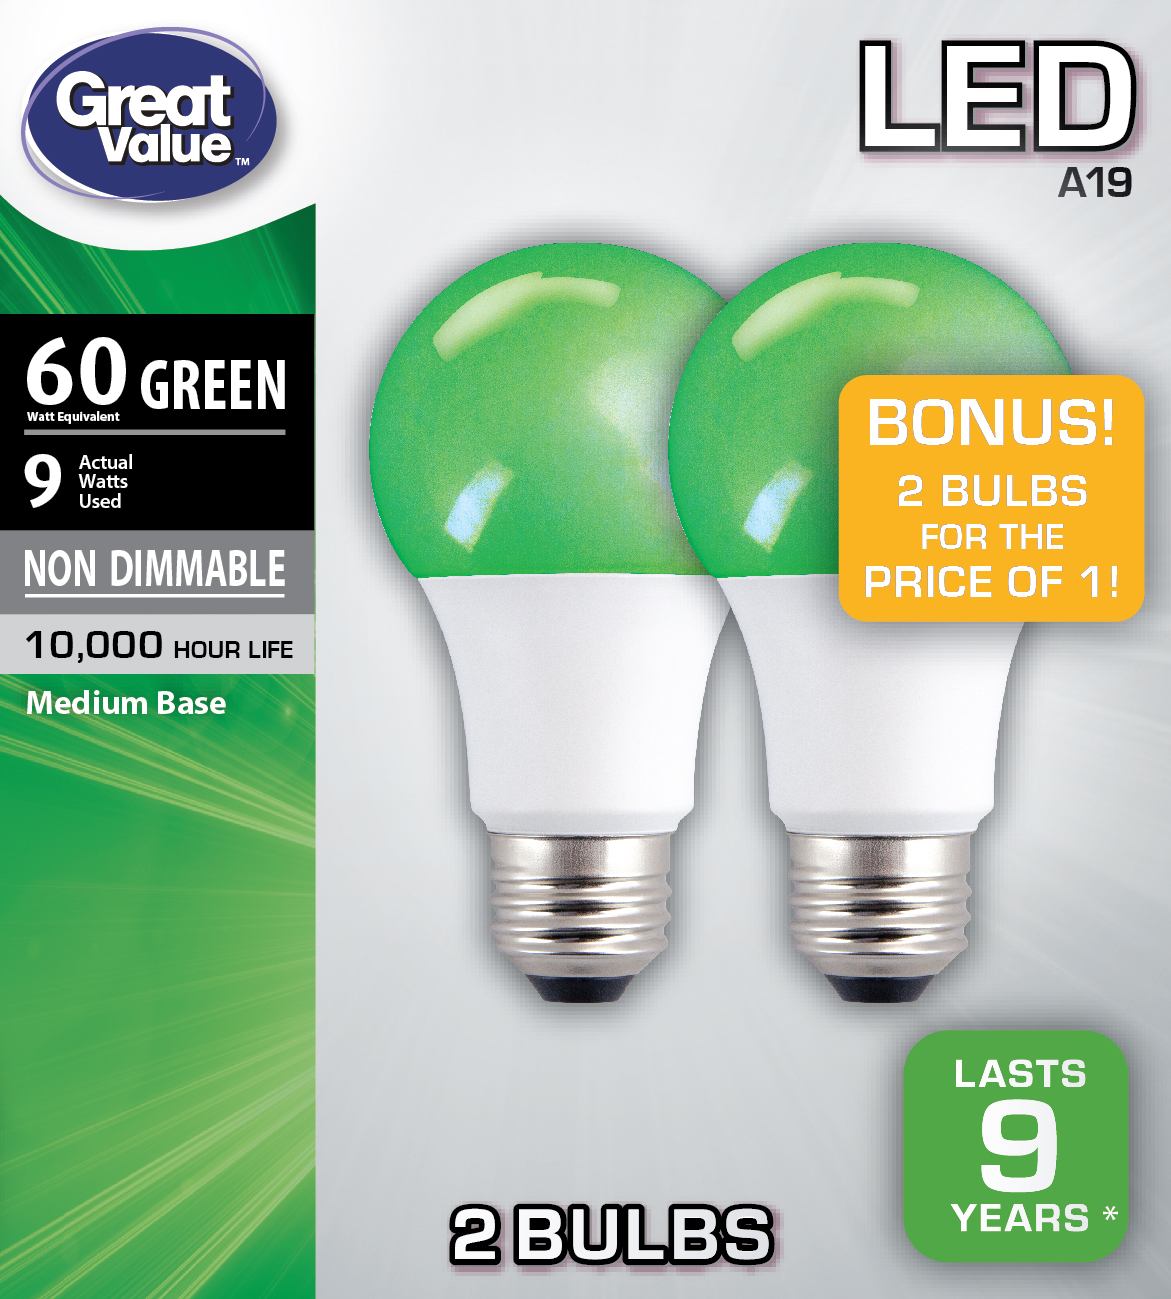 Great Value LED A19 (E26) Light Bulb, 9W (60W Equivalent), Green, 2-Pack